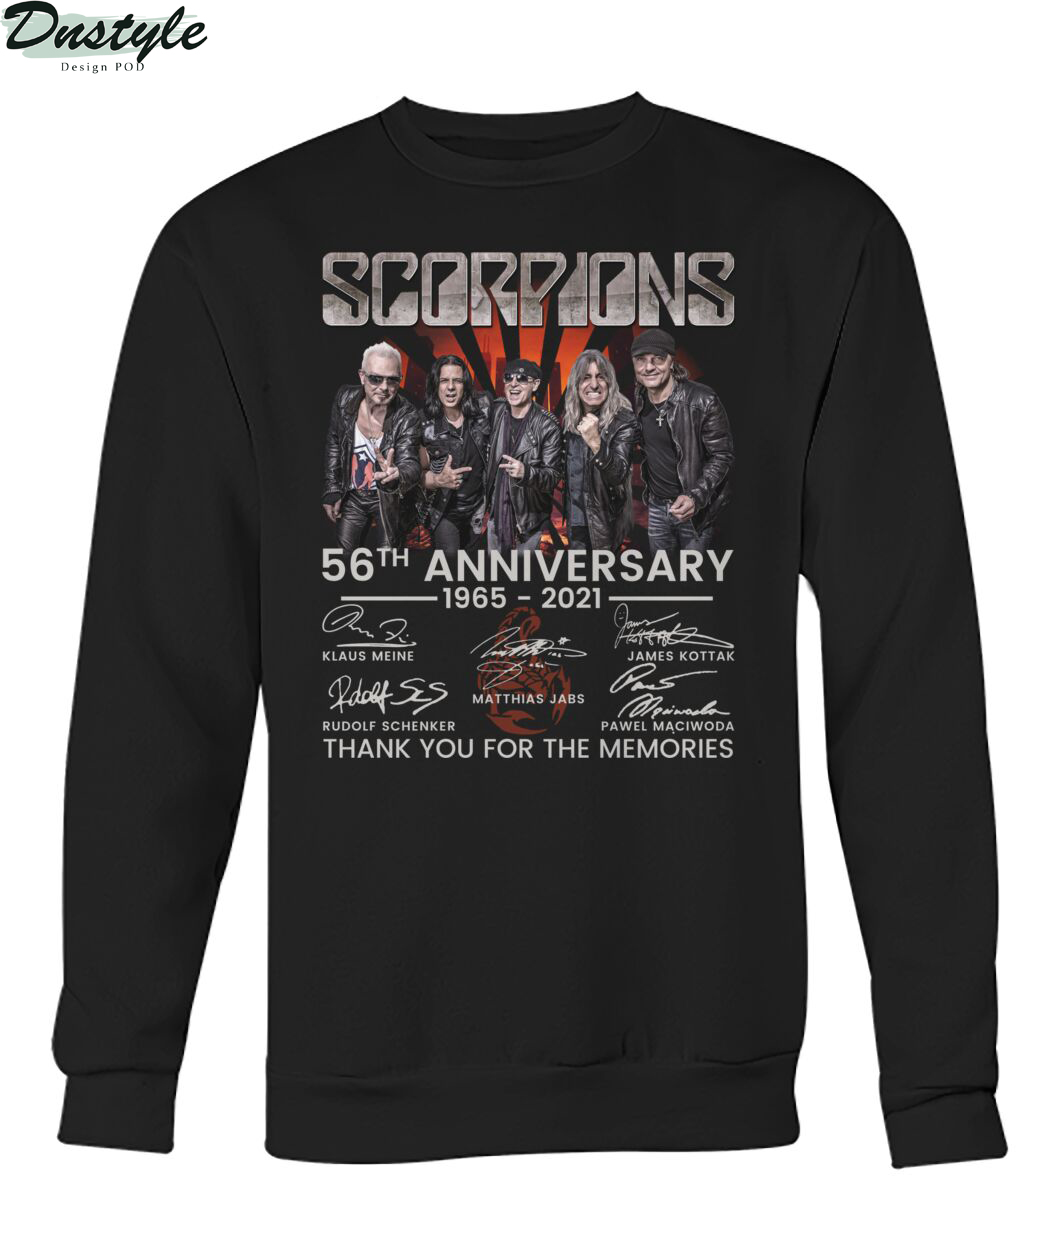 Scoprions 56th anniversary 1965 2021 thank you for the memories sweatshirt